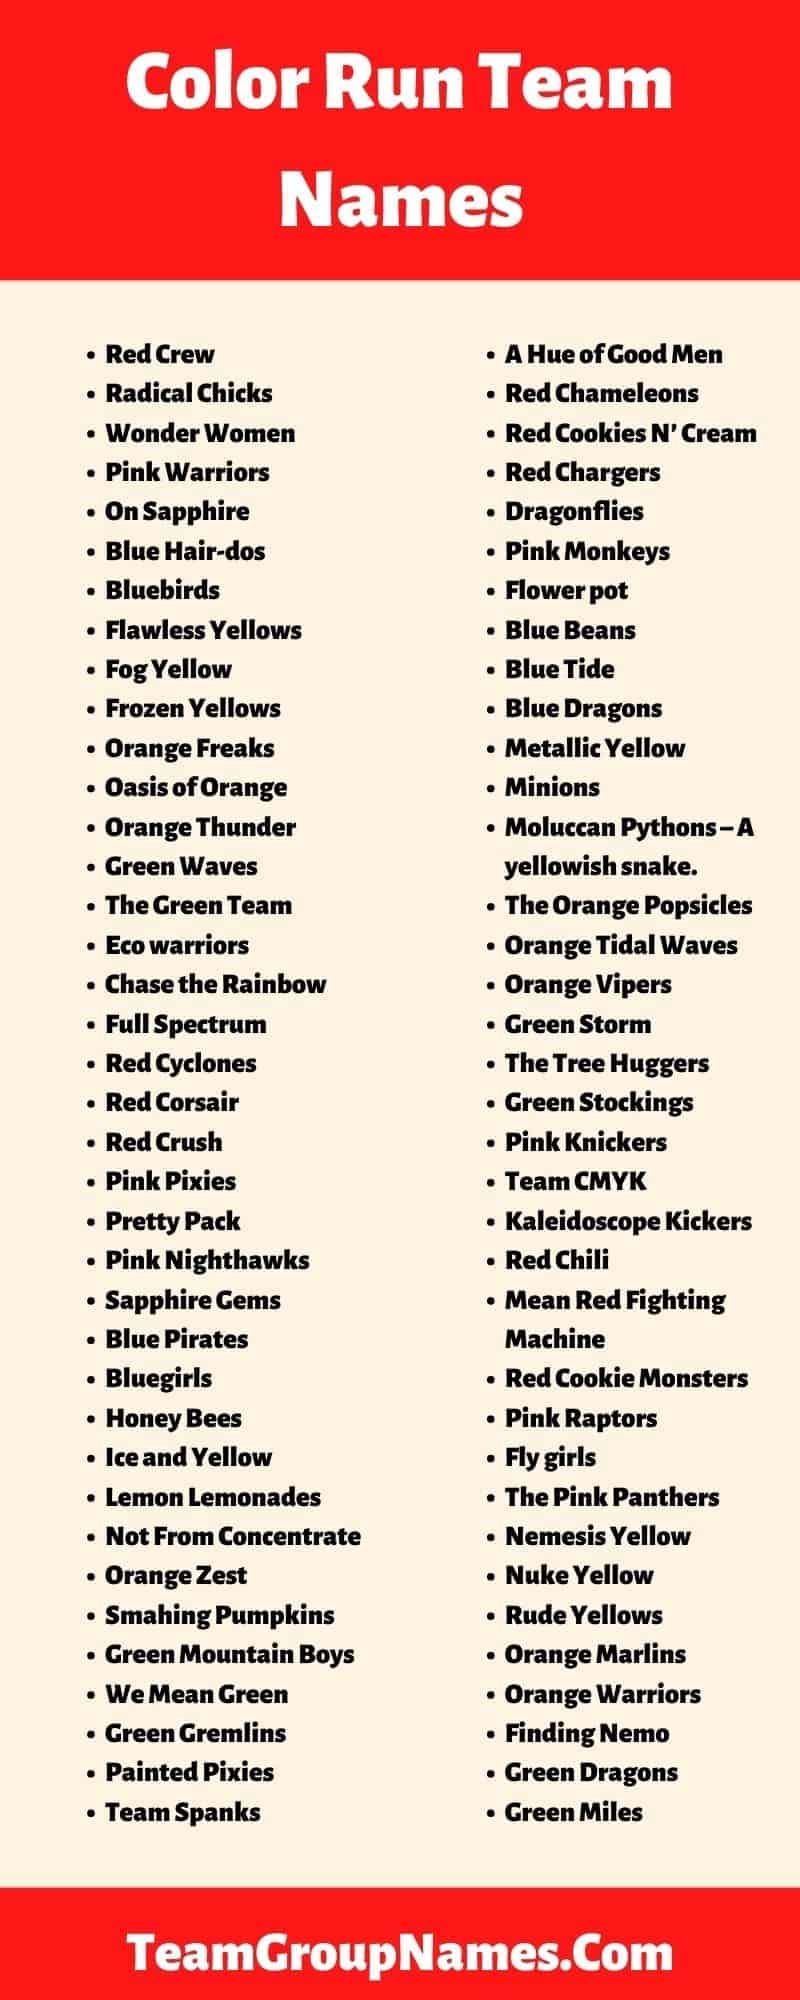 Team Names For Color Run